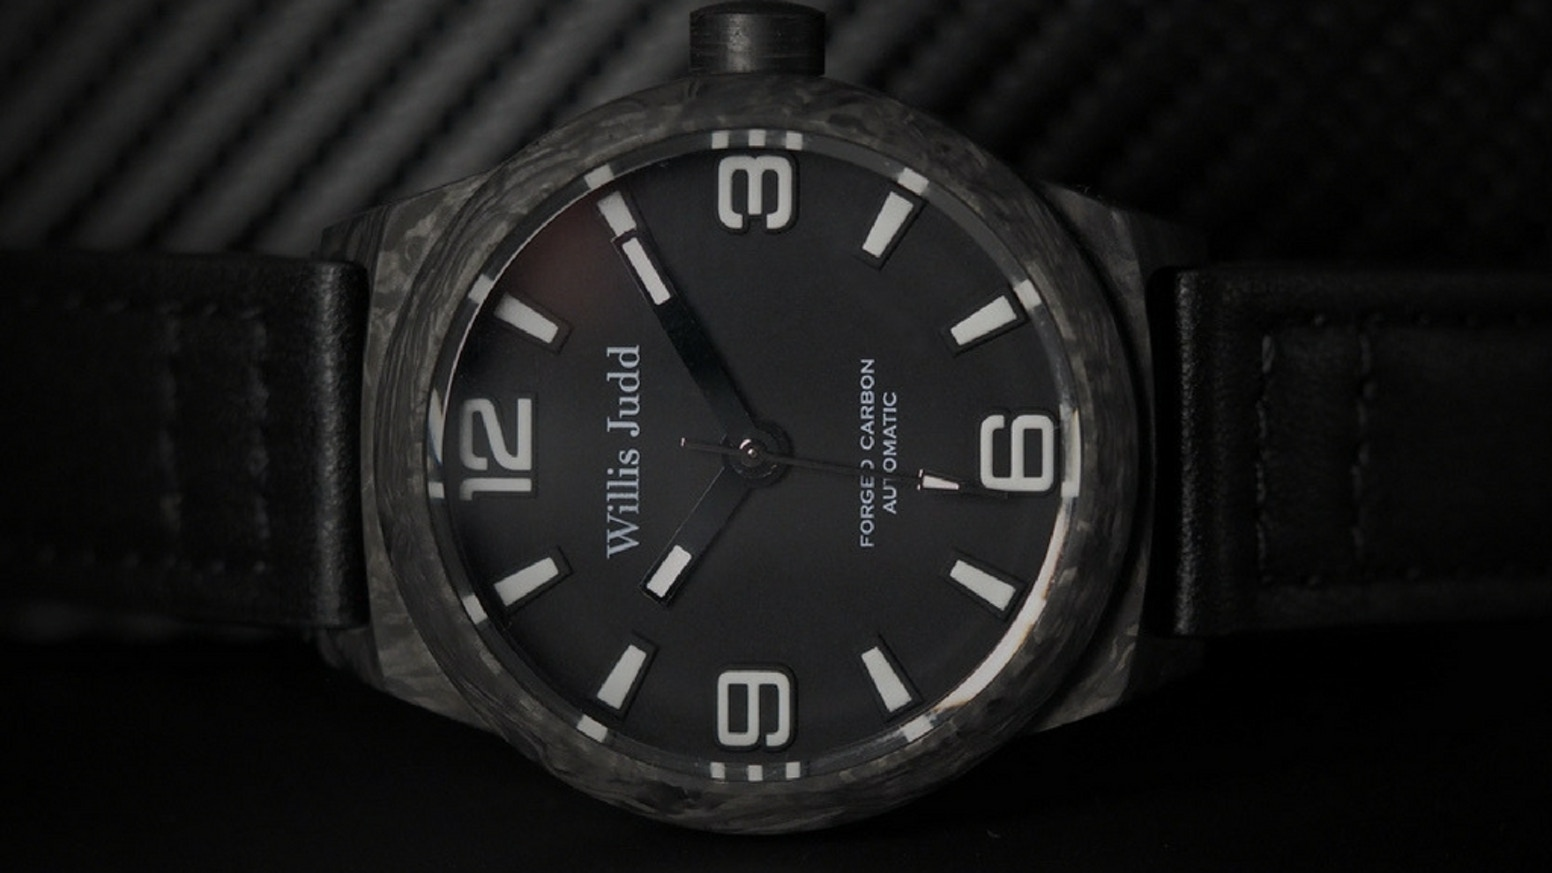 Engineered Forged Carbon watch case, powered using a Miyota 90s5 Automatic movement, featuring Lume & Italian Leather Strap